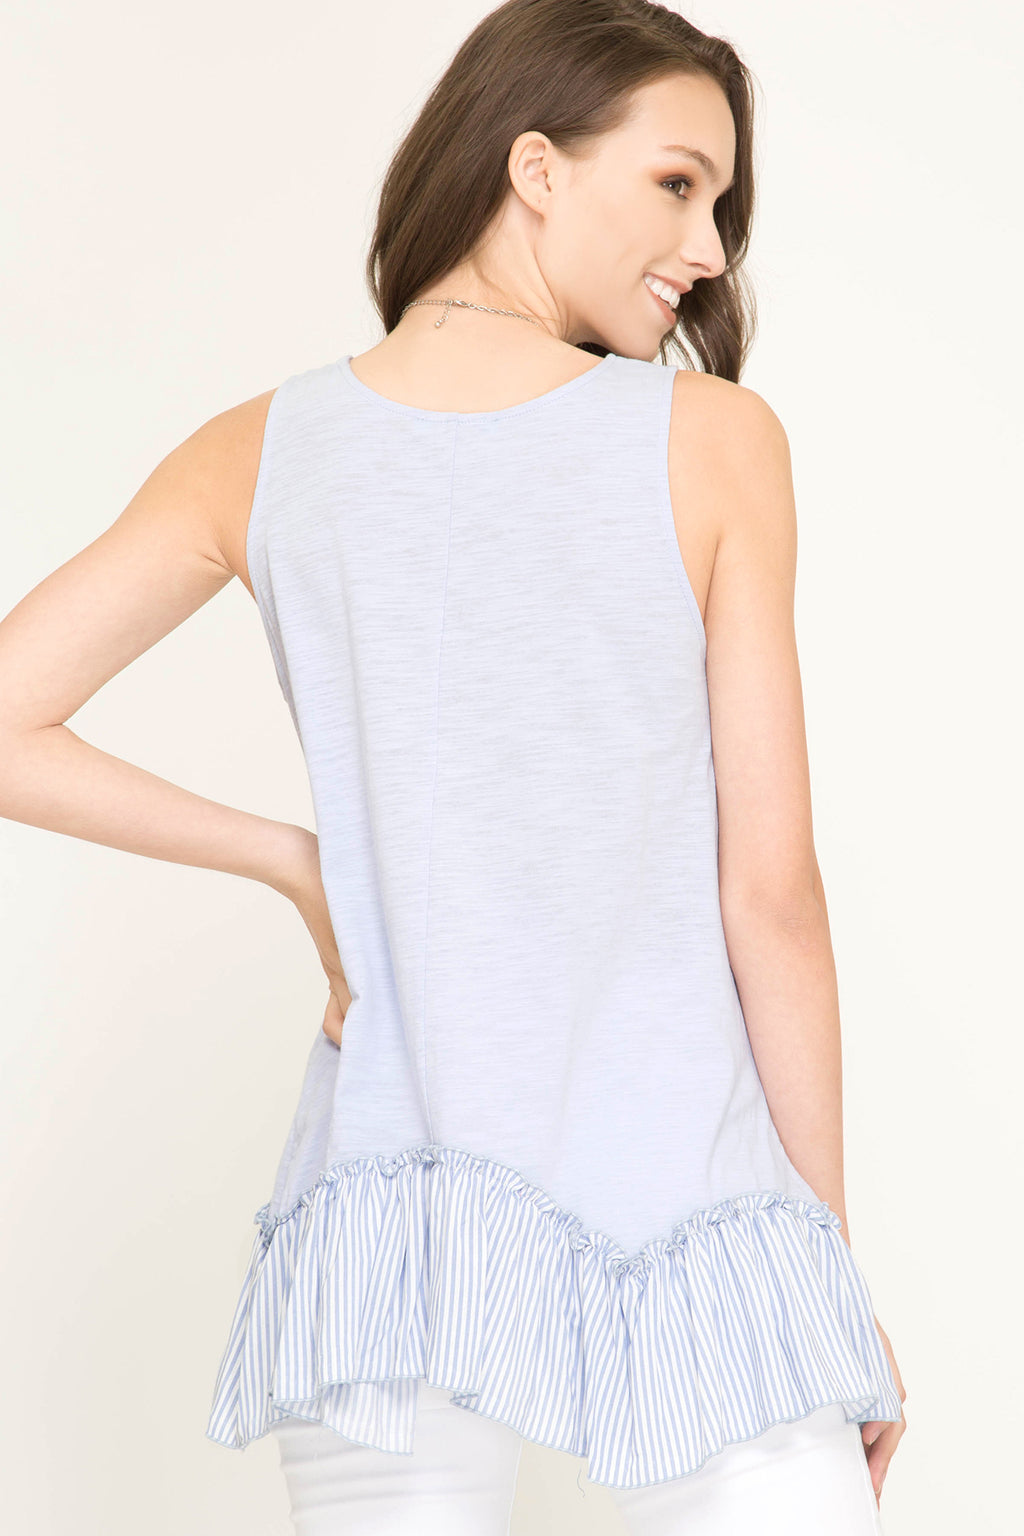 SLEEVELESS RUFFLE TOP - Erin Edit Shop